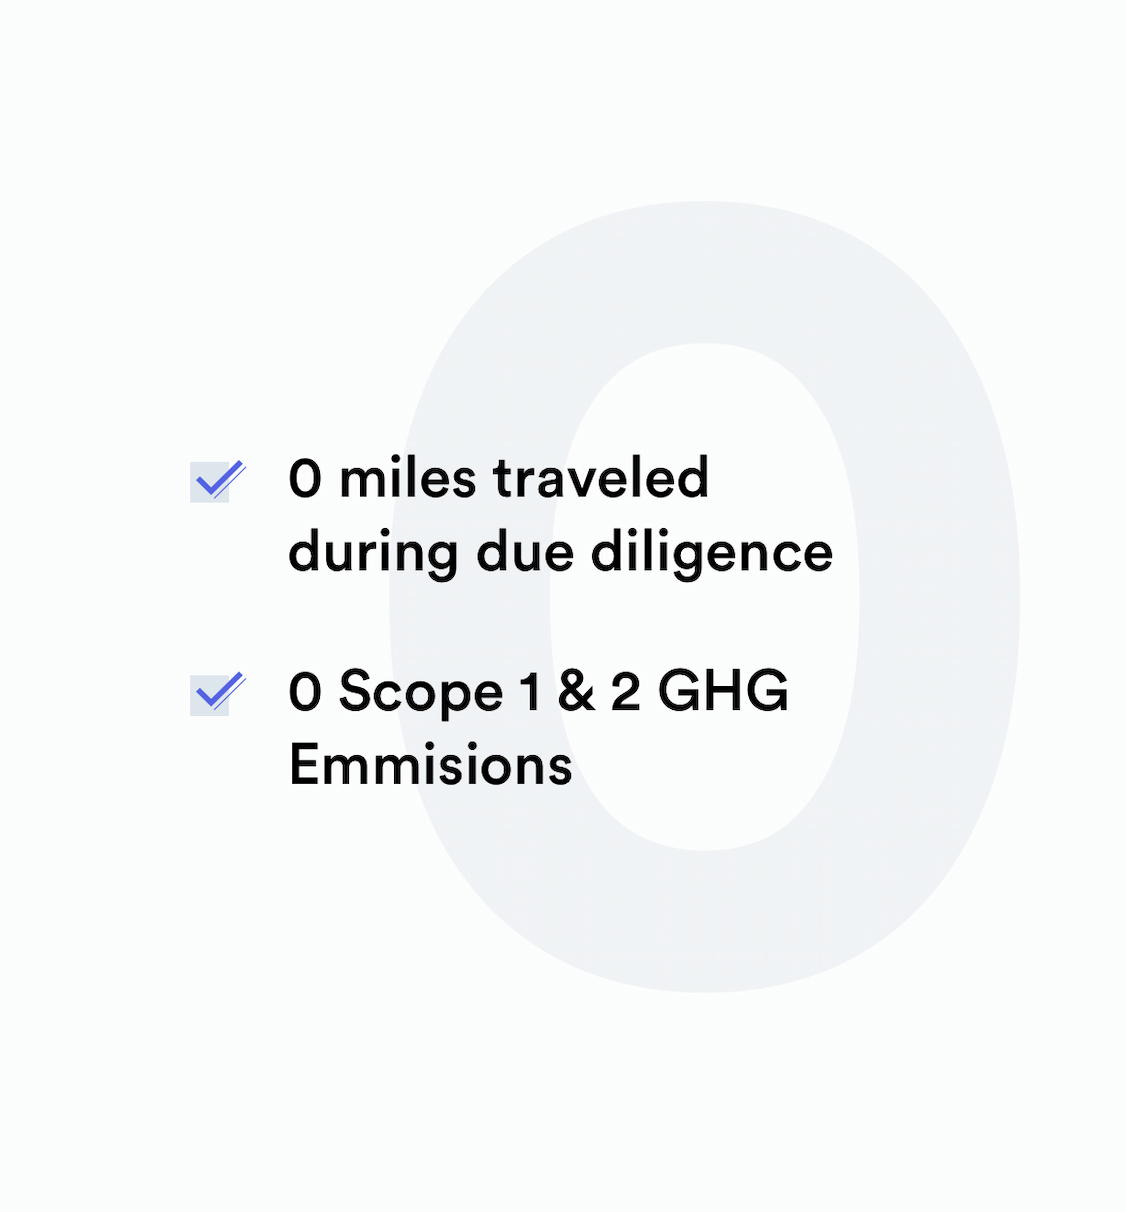 0 miles traveled during due diligence. 0 Scope 1 & 2 GHG Emissions.